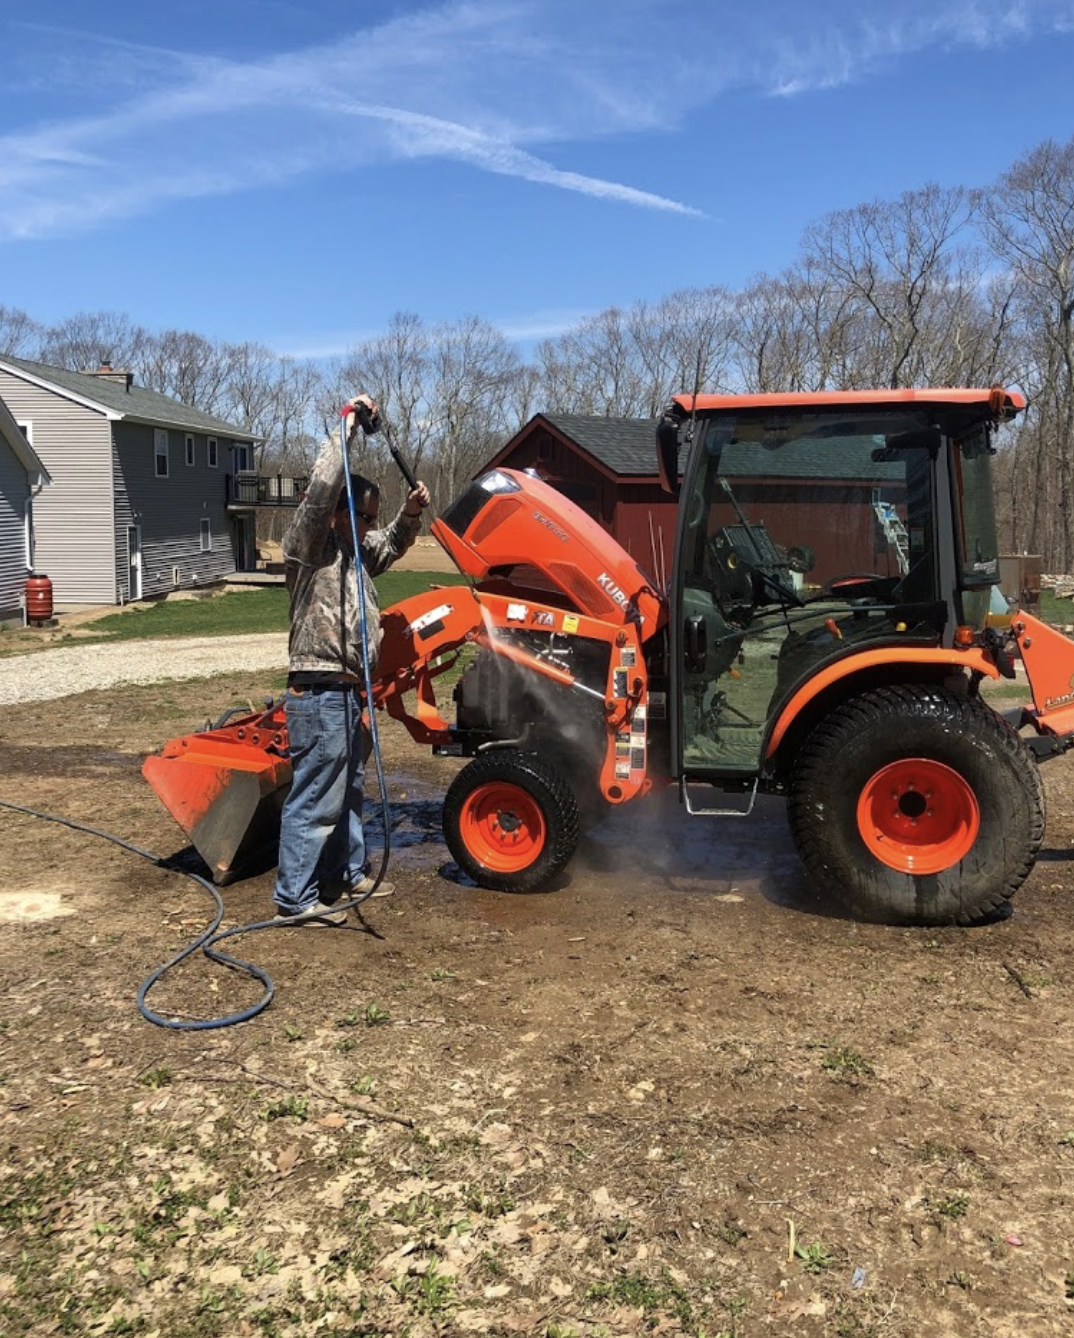 Power Washing a Tractor